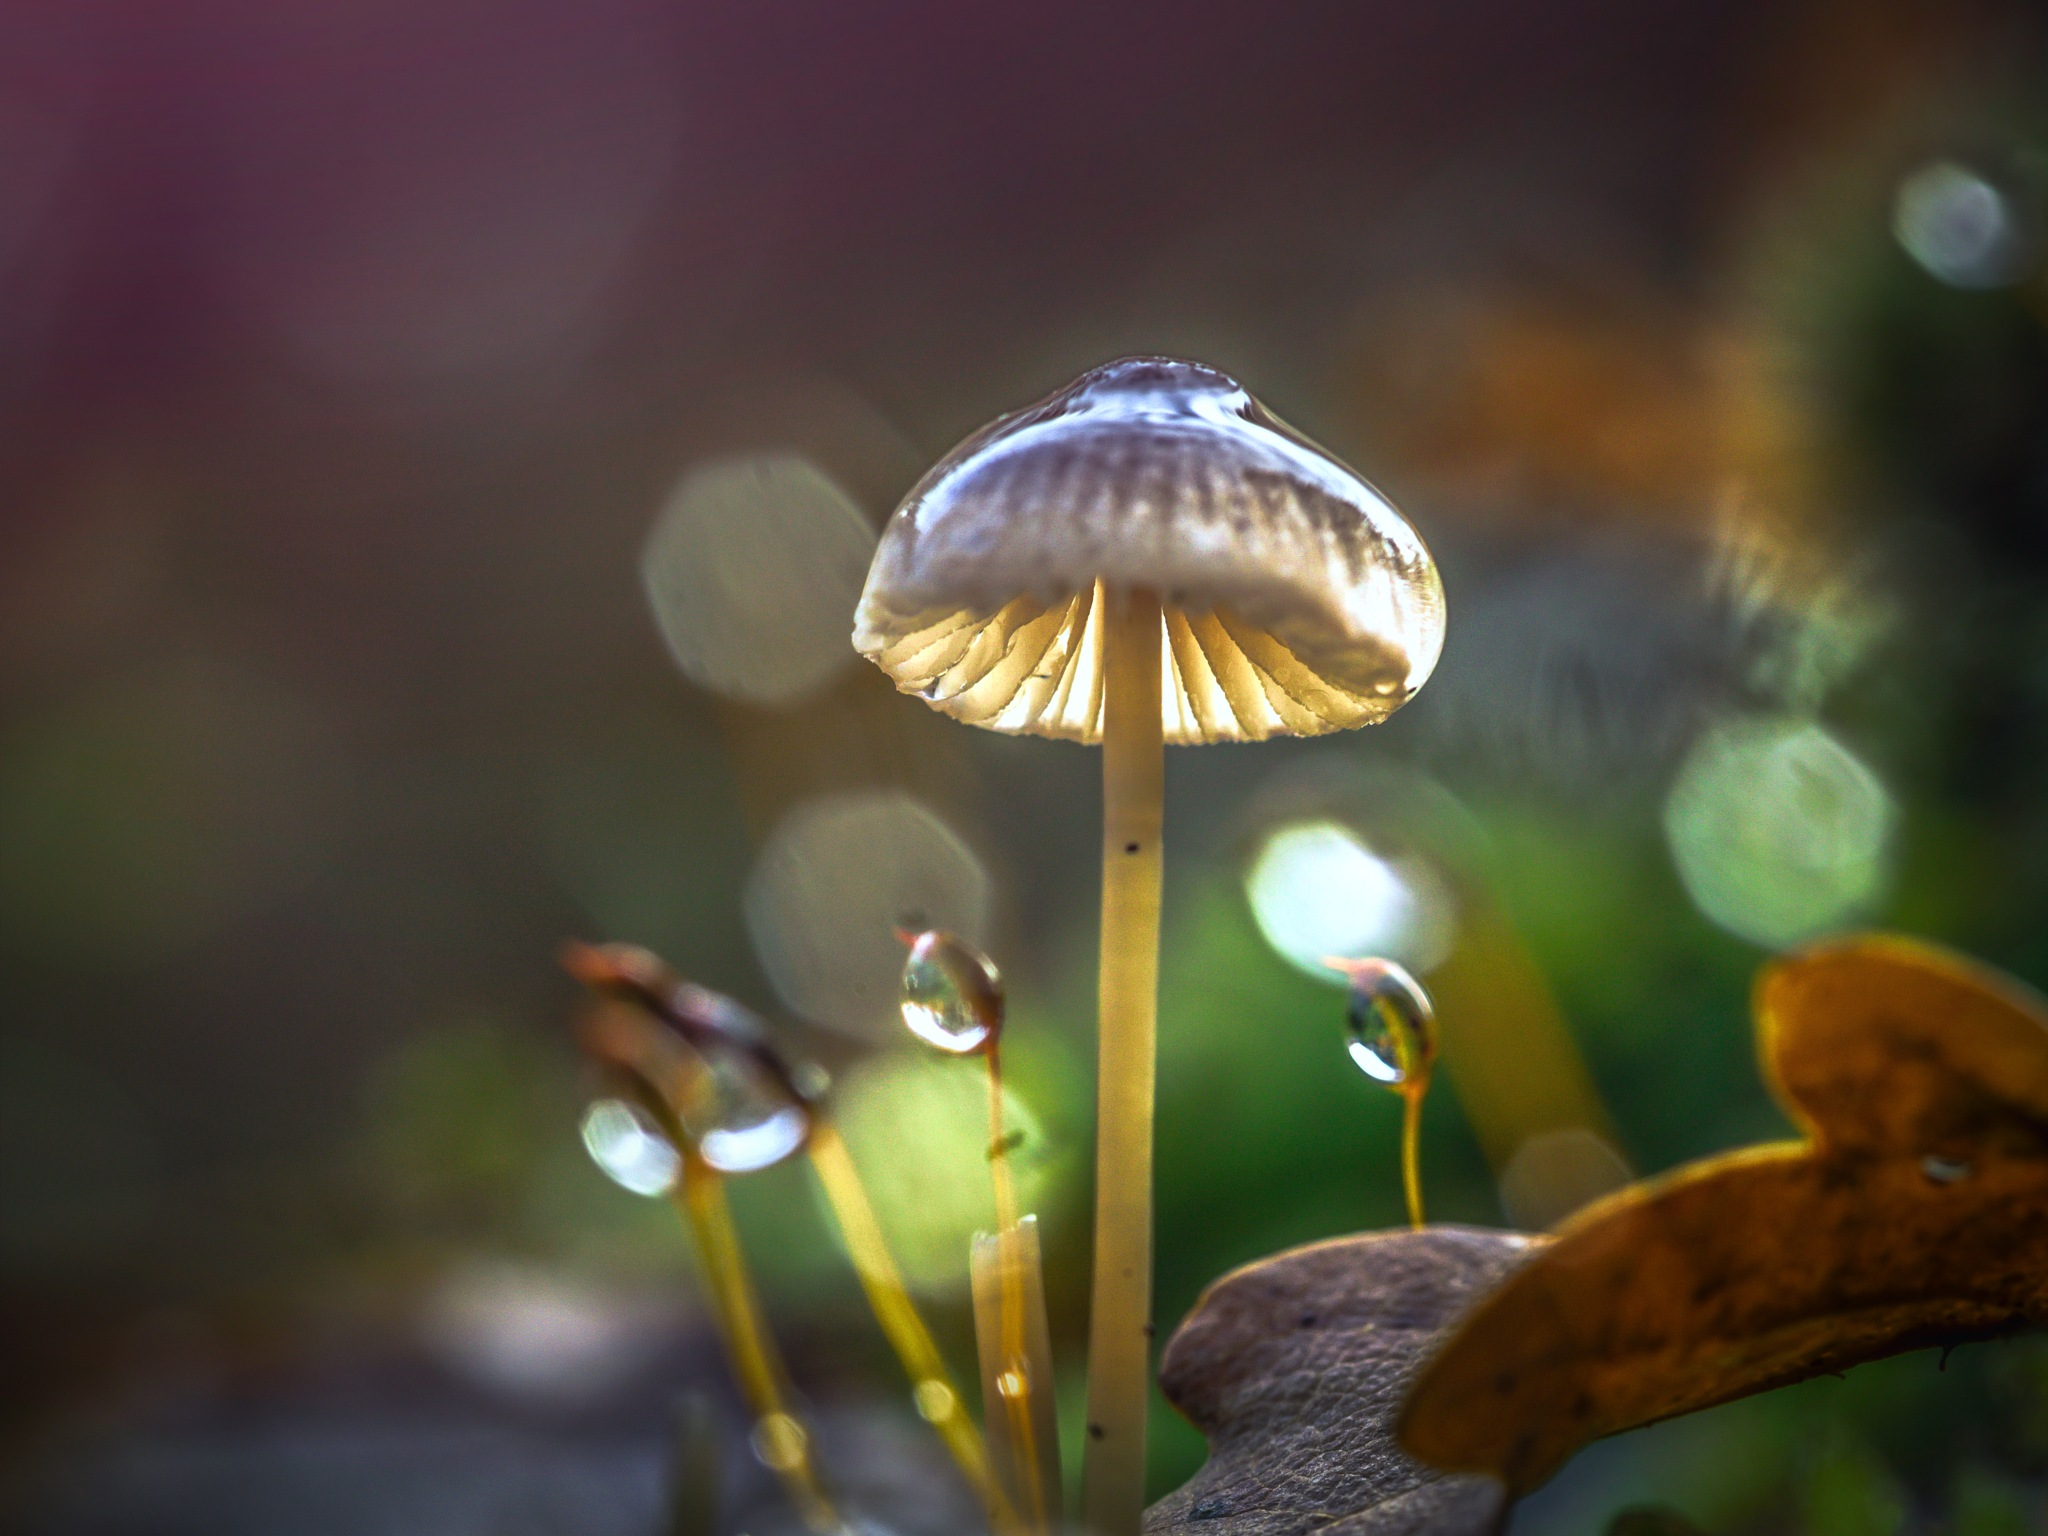 After the Rain by Sarah Walters